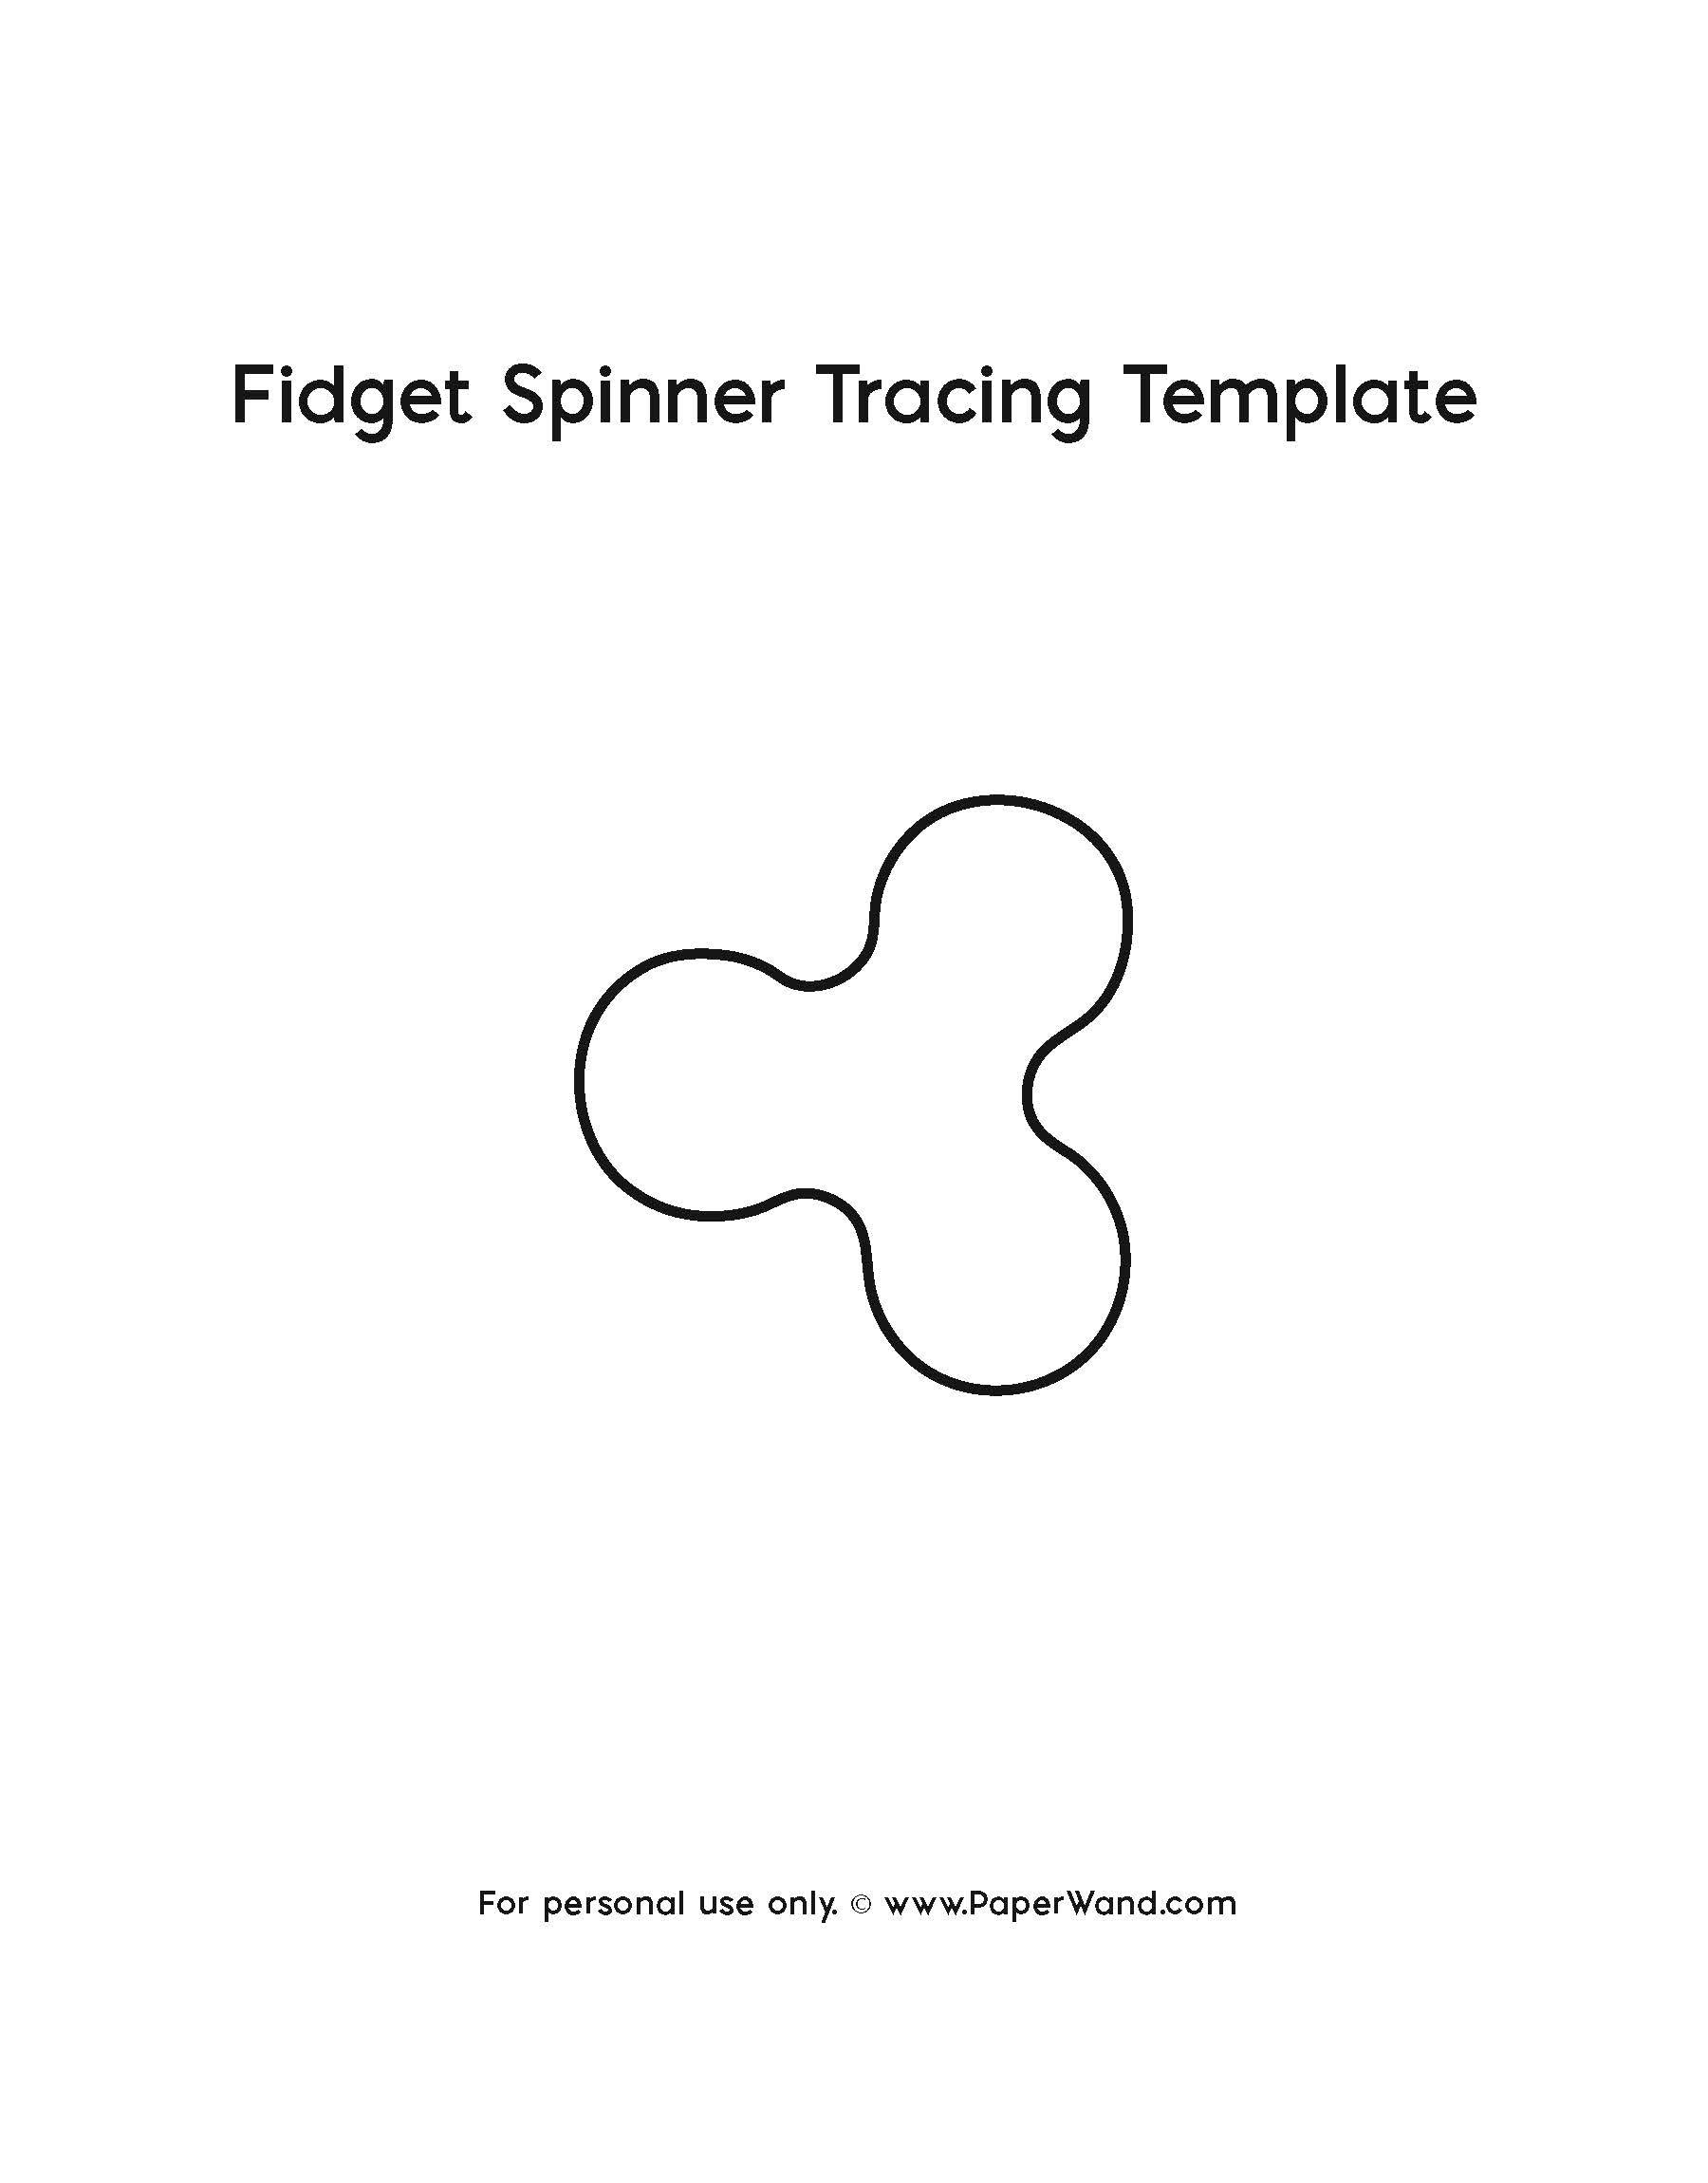 Fidget Spinner Template Paperwand